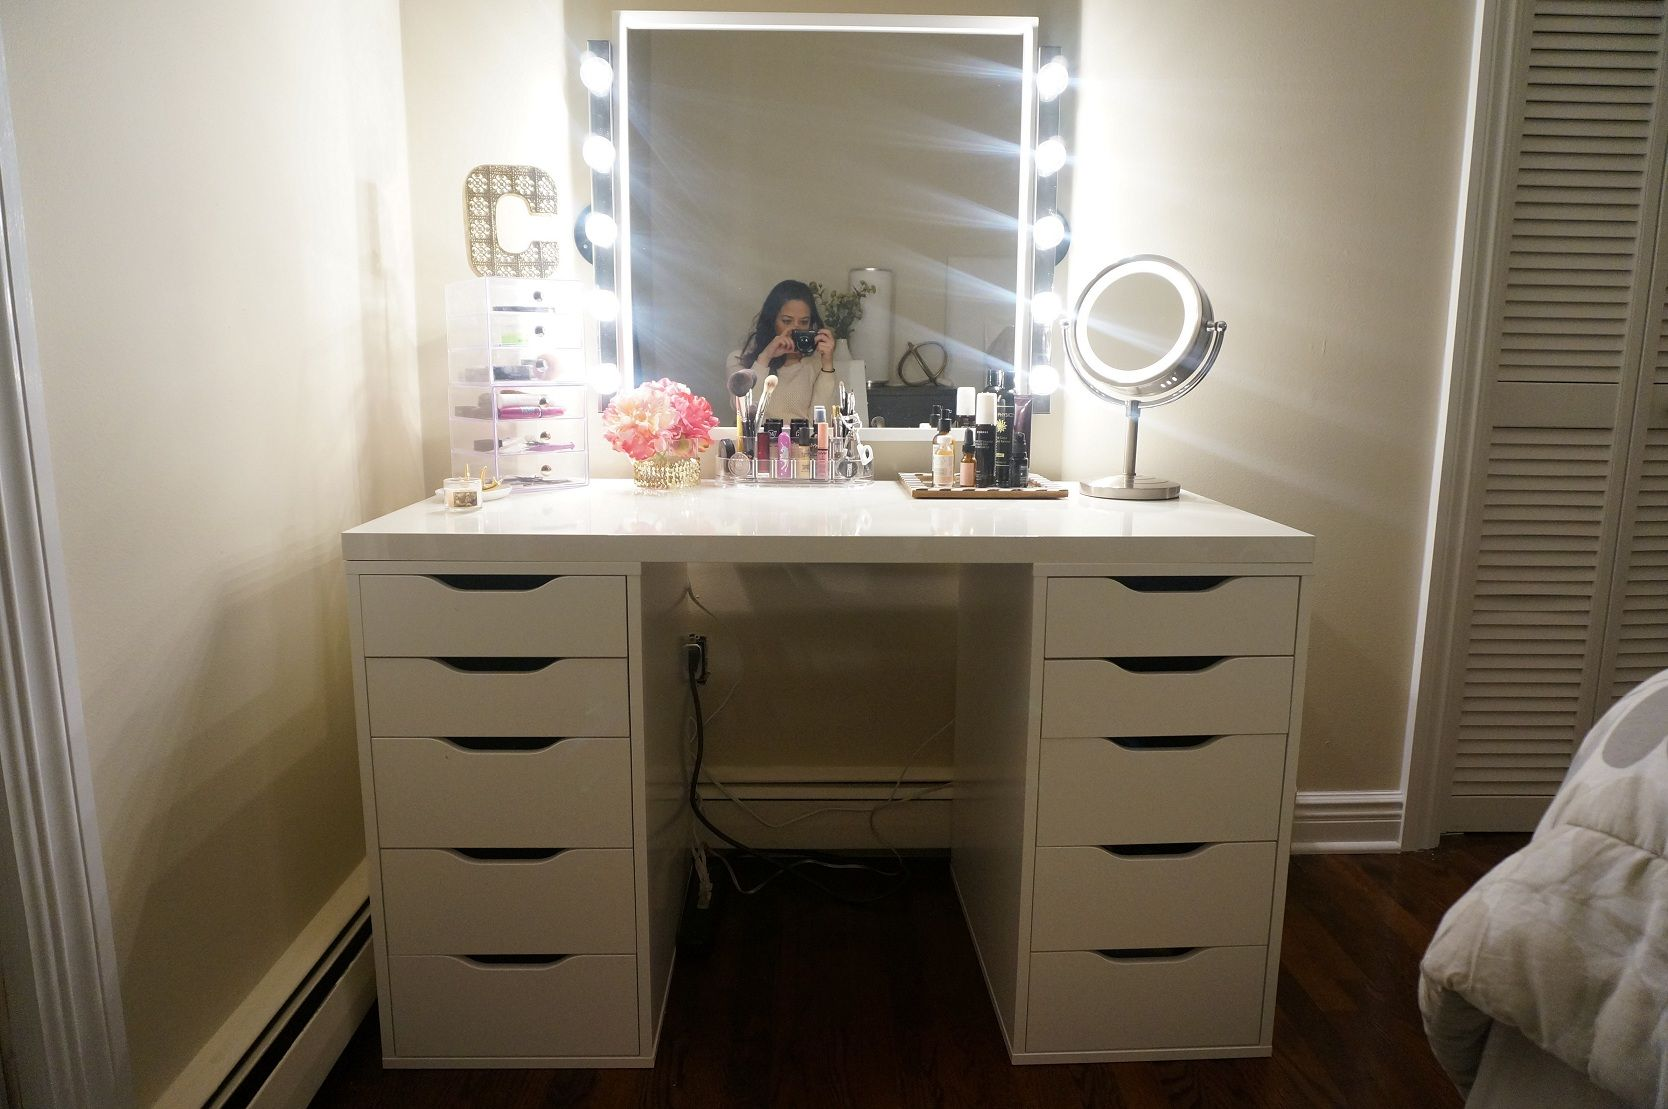 DIY Makeup Vanity Mirror with Lights | Home style | Pinterest ...